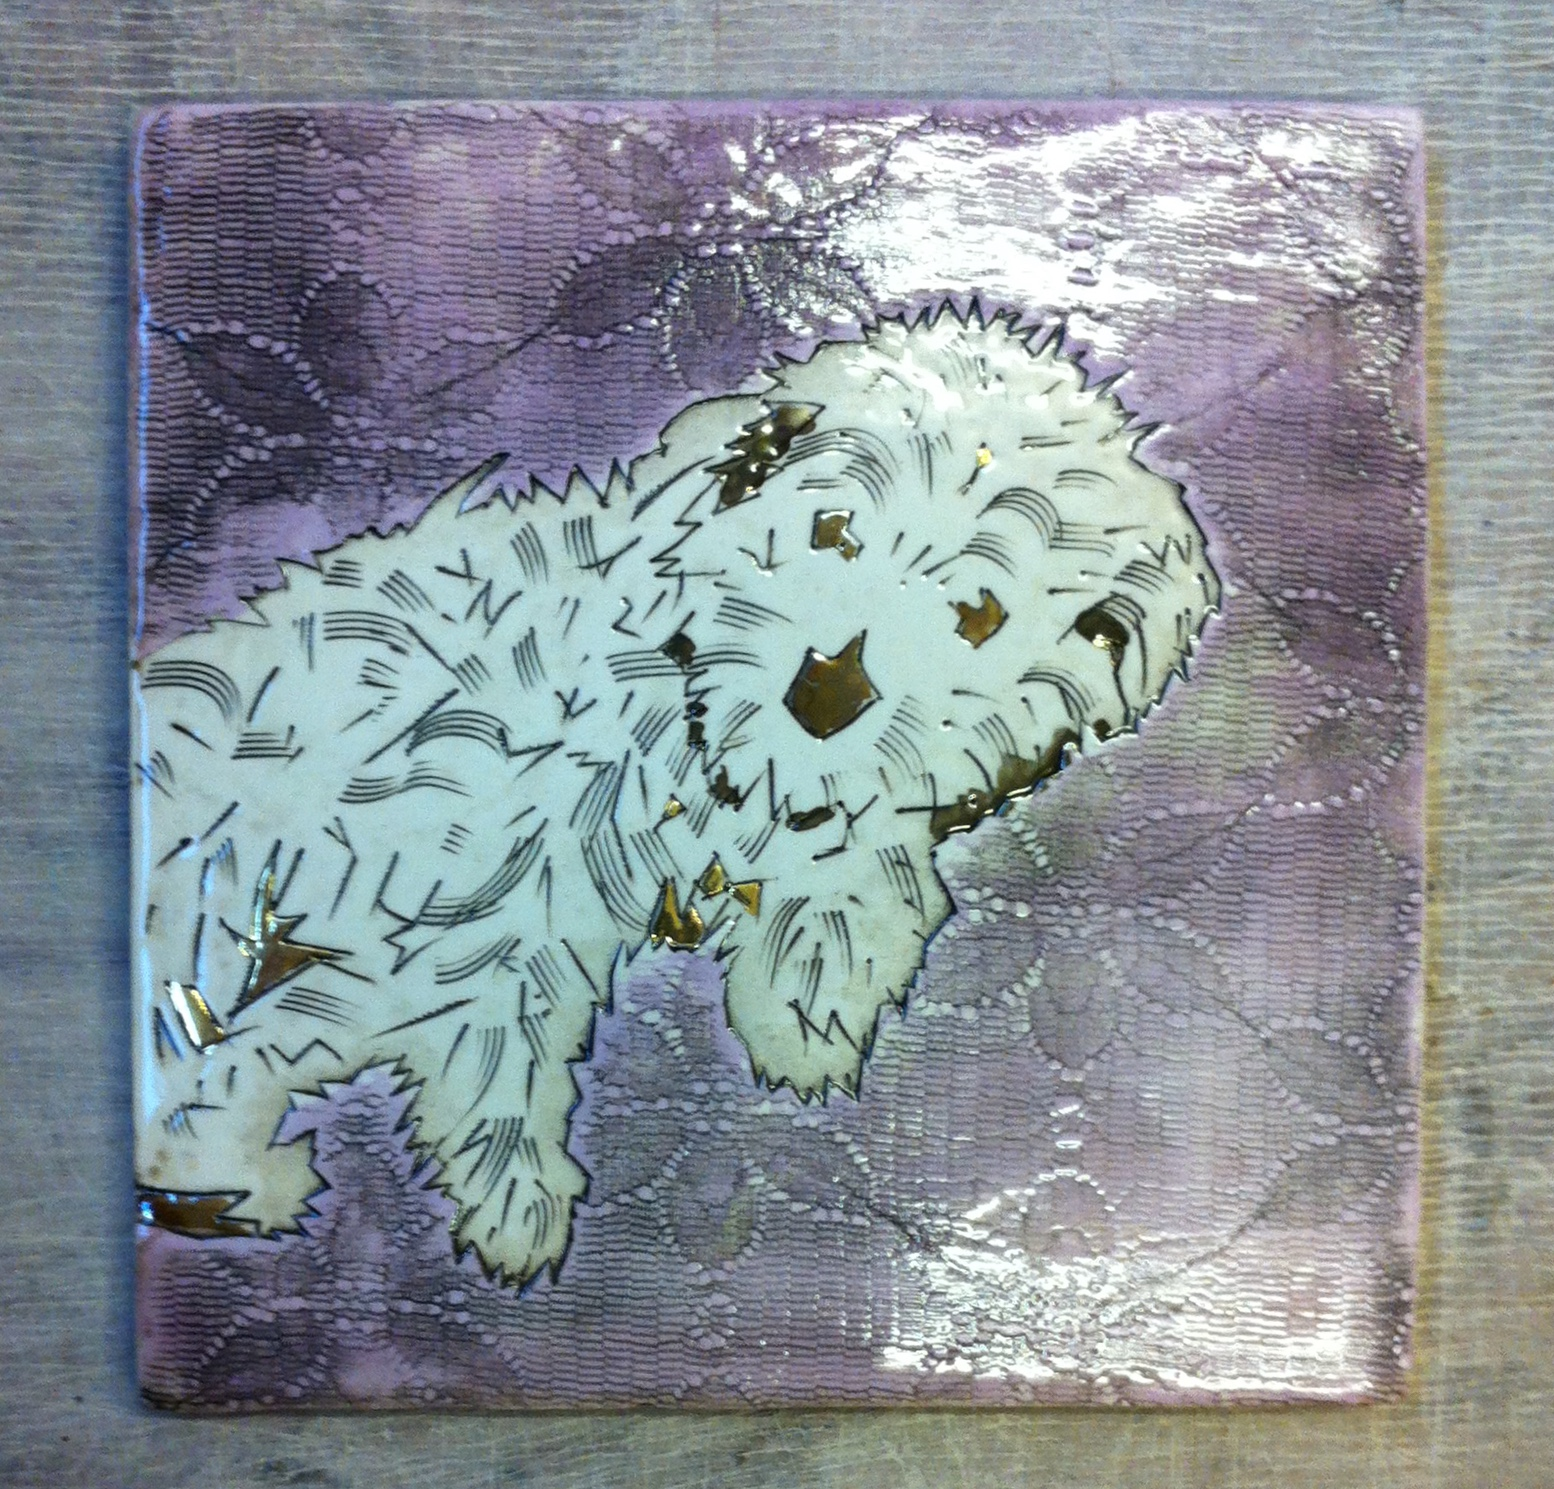 This is Bun Bun, psycho terrier contary to fluffy first impressions. His owner Mr Scruff wanted a tile to commemorate Bun Bun's entry into the guinness book of records for fluffies dog on the planet. He emailed me a photo of Bun Bun and this is I tile I made.